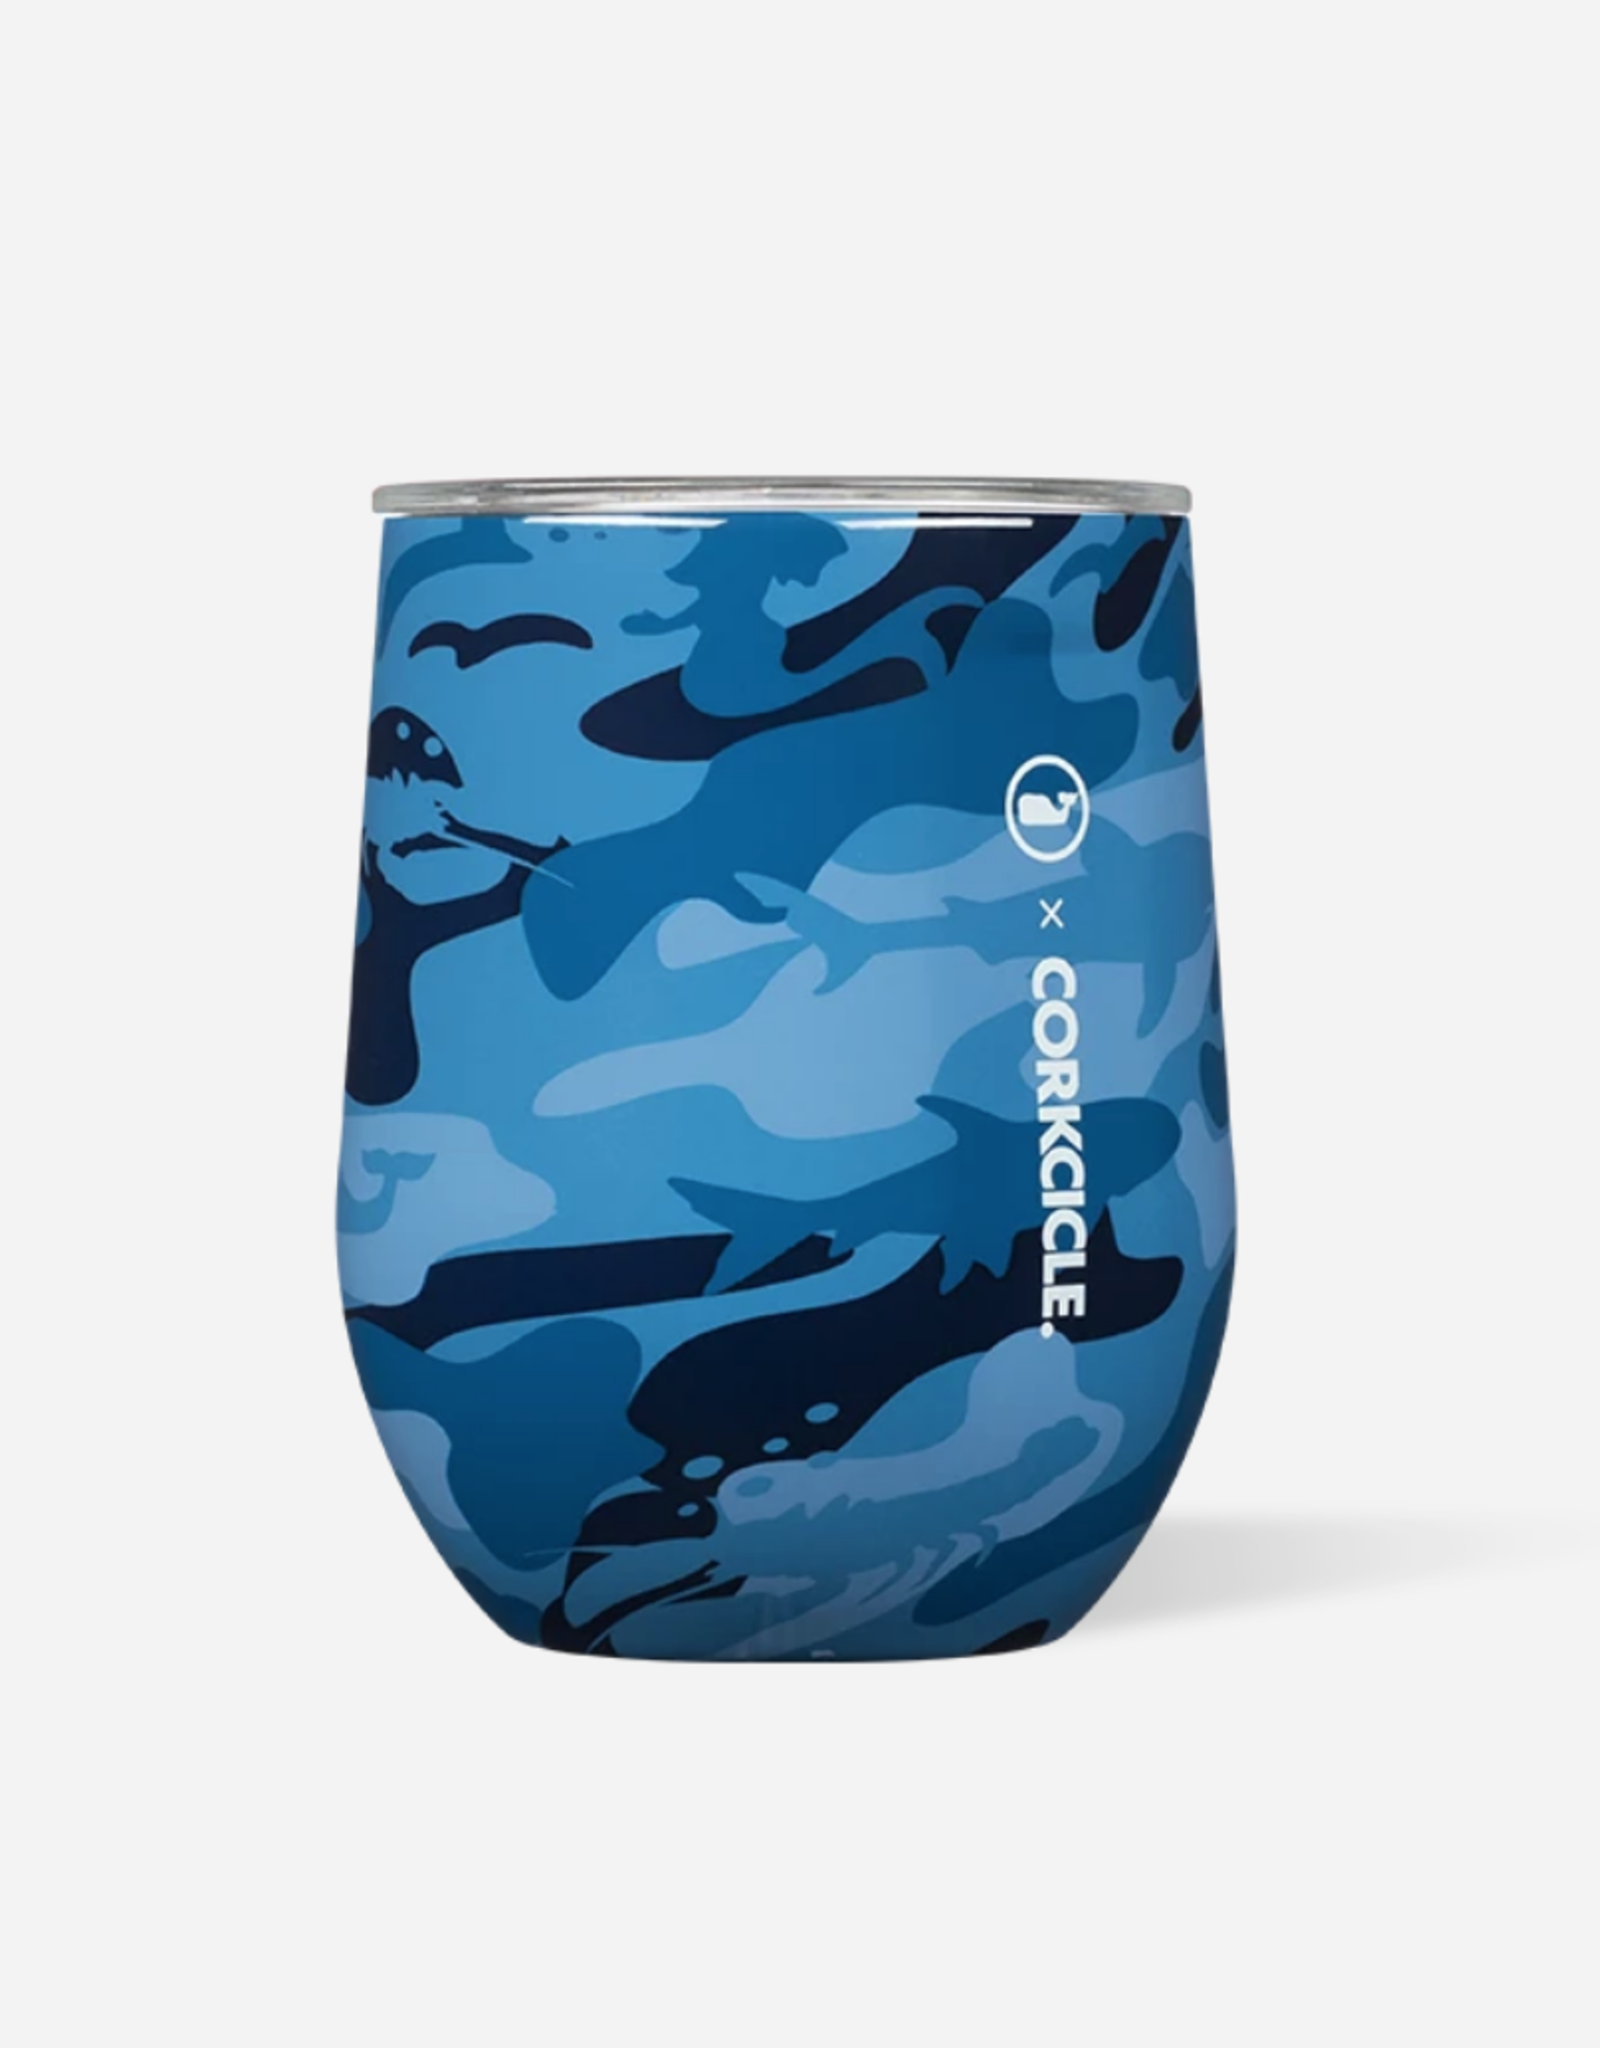 Corkcicle Corkcicle - 12oz Stemless - Vineyard Vines Blue Camo